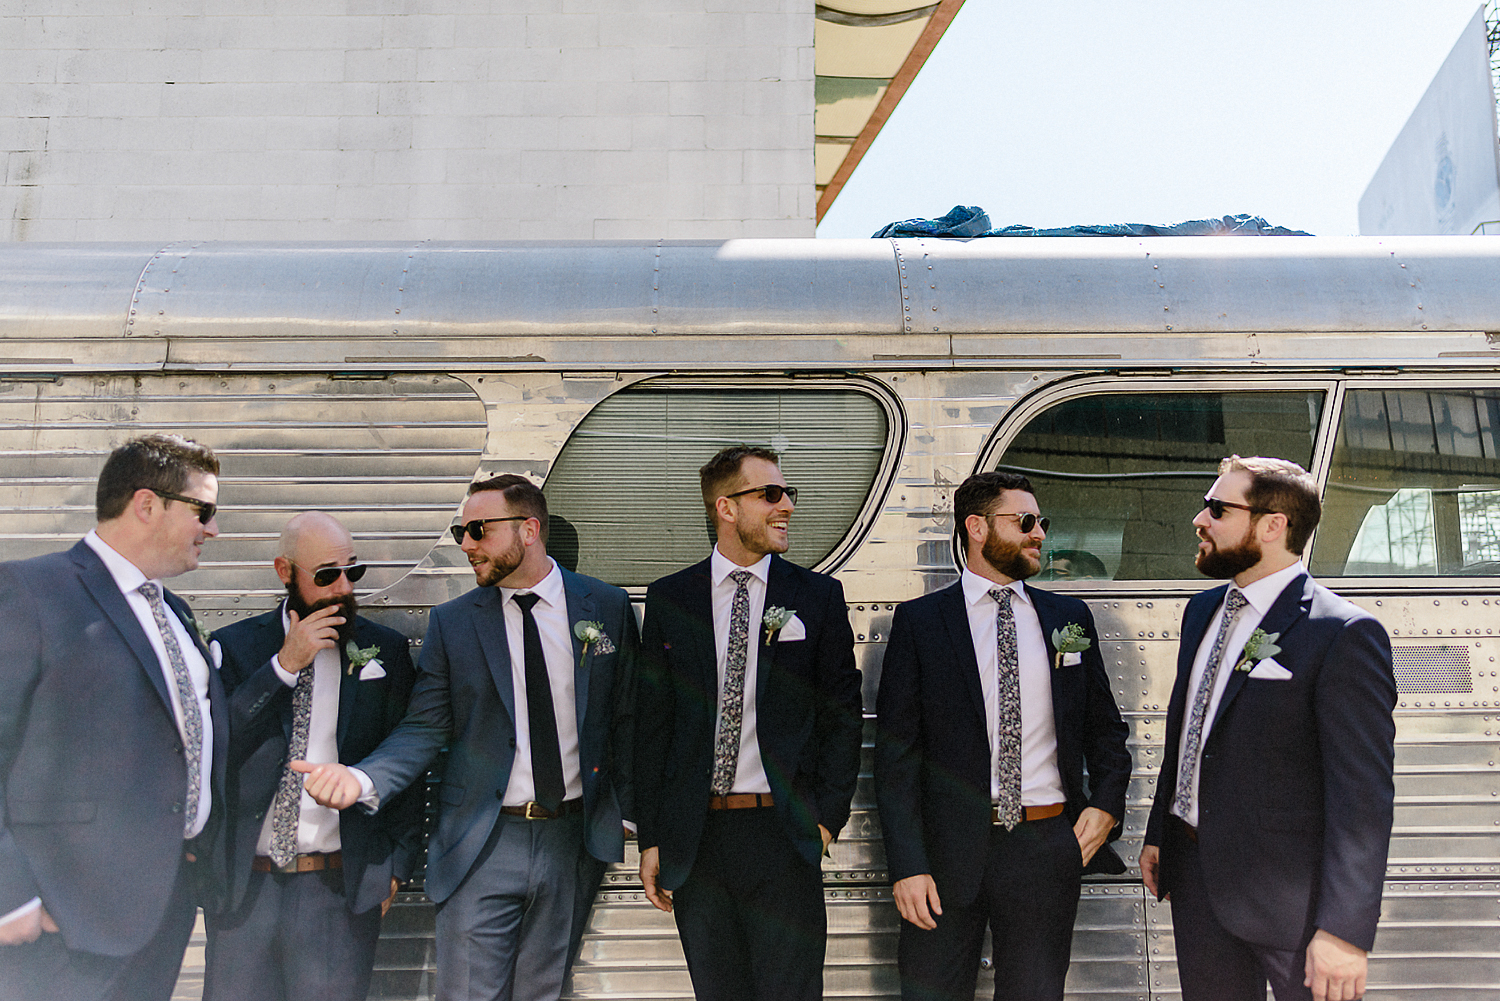 Toronto-Wedding-Photographers-3B-Photography-Airship37-Wedding-Photos-Documentary-Photojournalistic-Wedding-Photography-Venue-Details-Candid-Groomsmen-Portrait.jpg